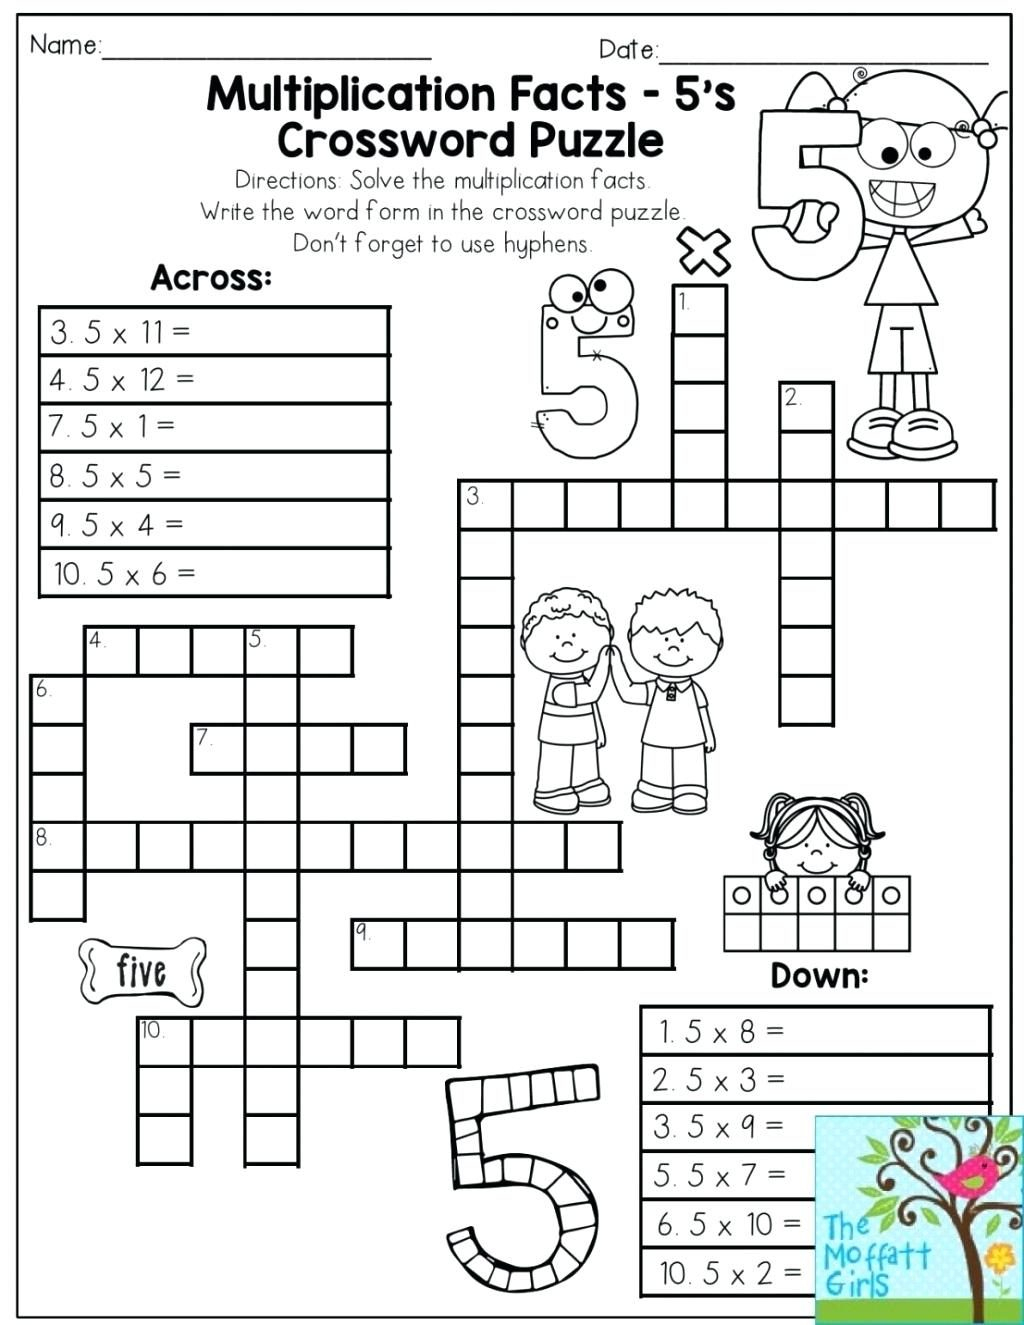 Printable Math Puzzles 5Th Grade Maths Ksheets Middle School Pdf Fun - Printable Math Puzzles Pdf